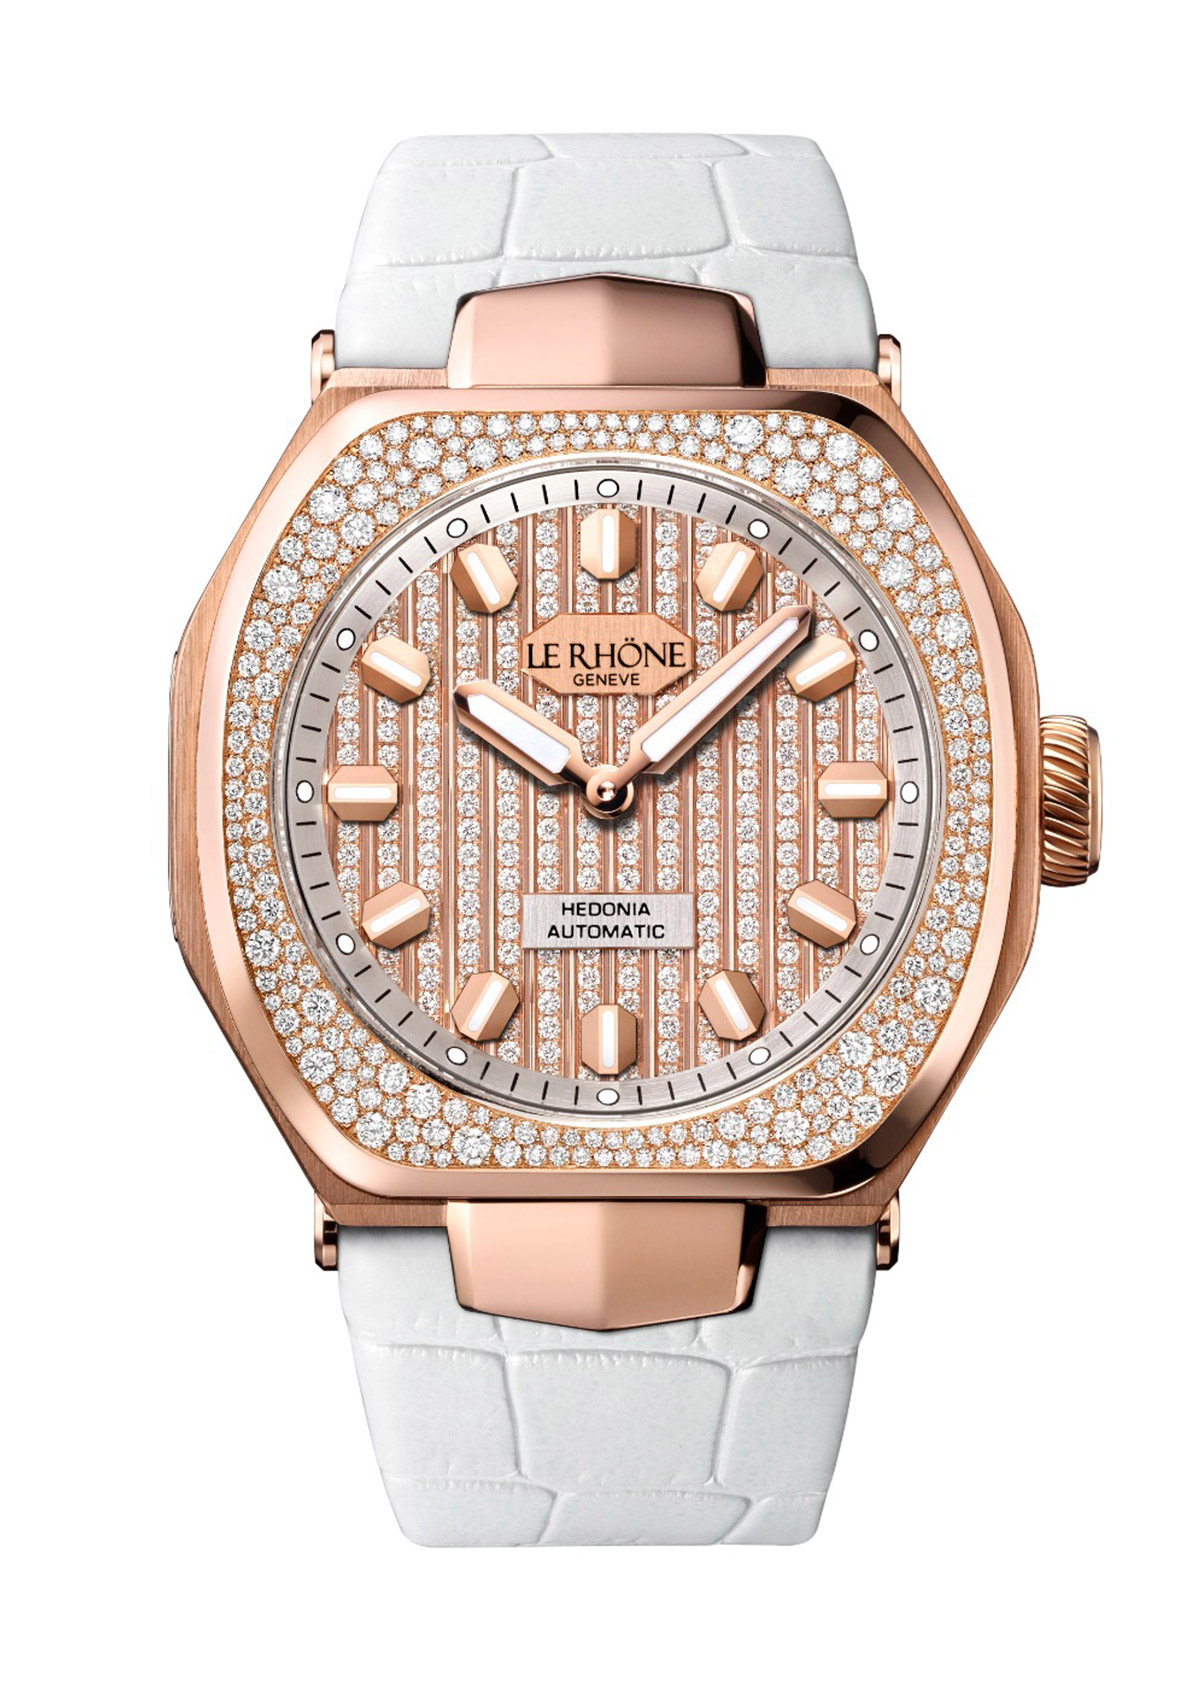 high-jewelery-hedonia-le-rhone-watch-H5PG2J1-1-A00A